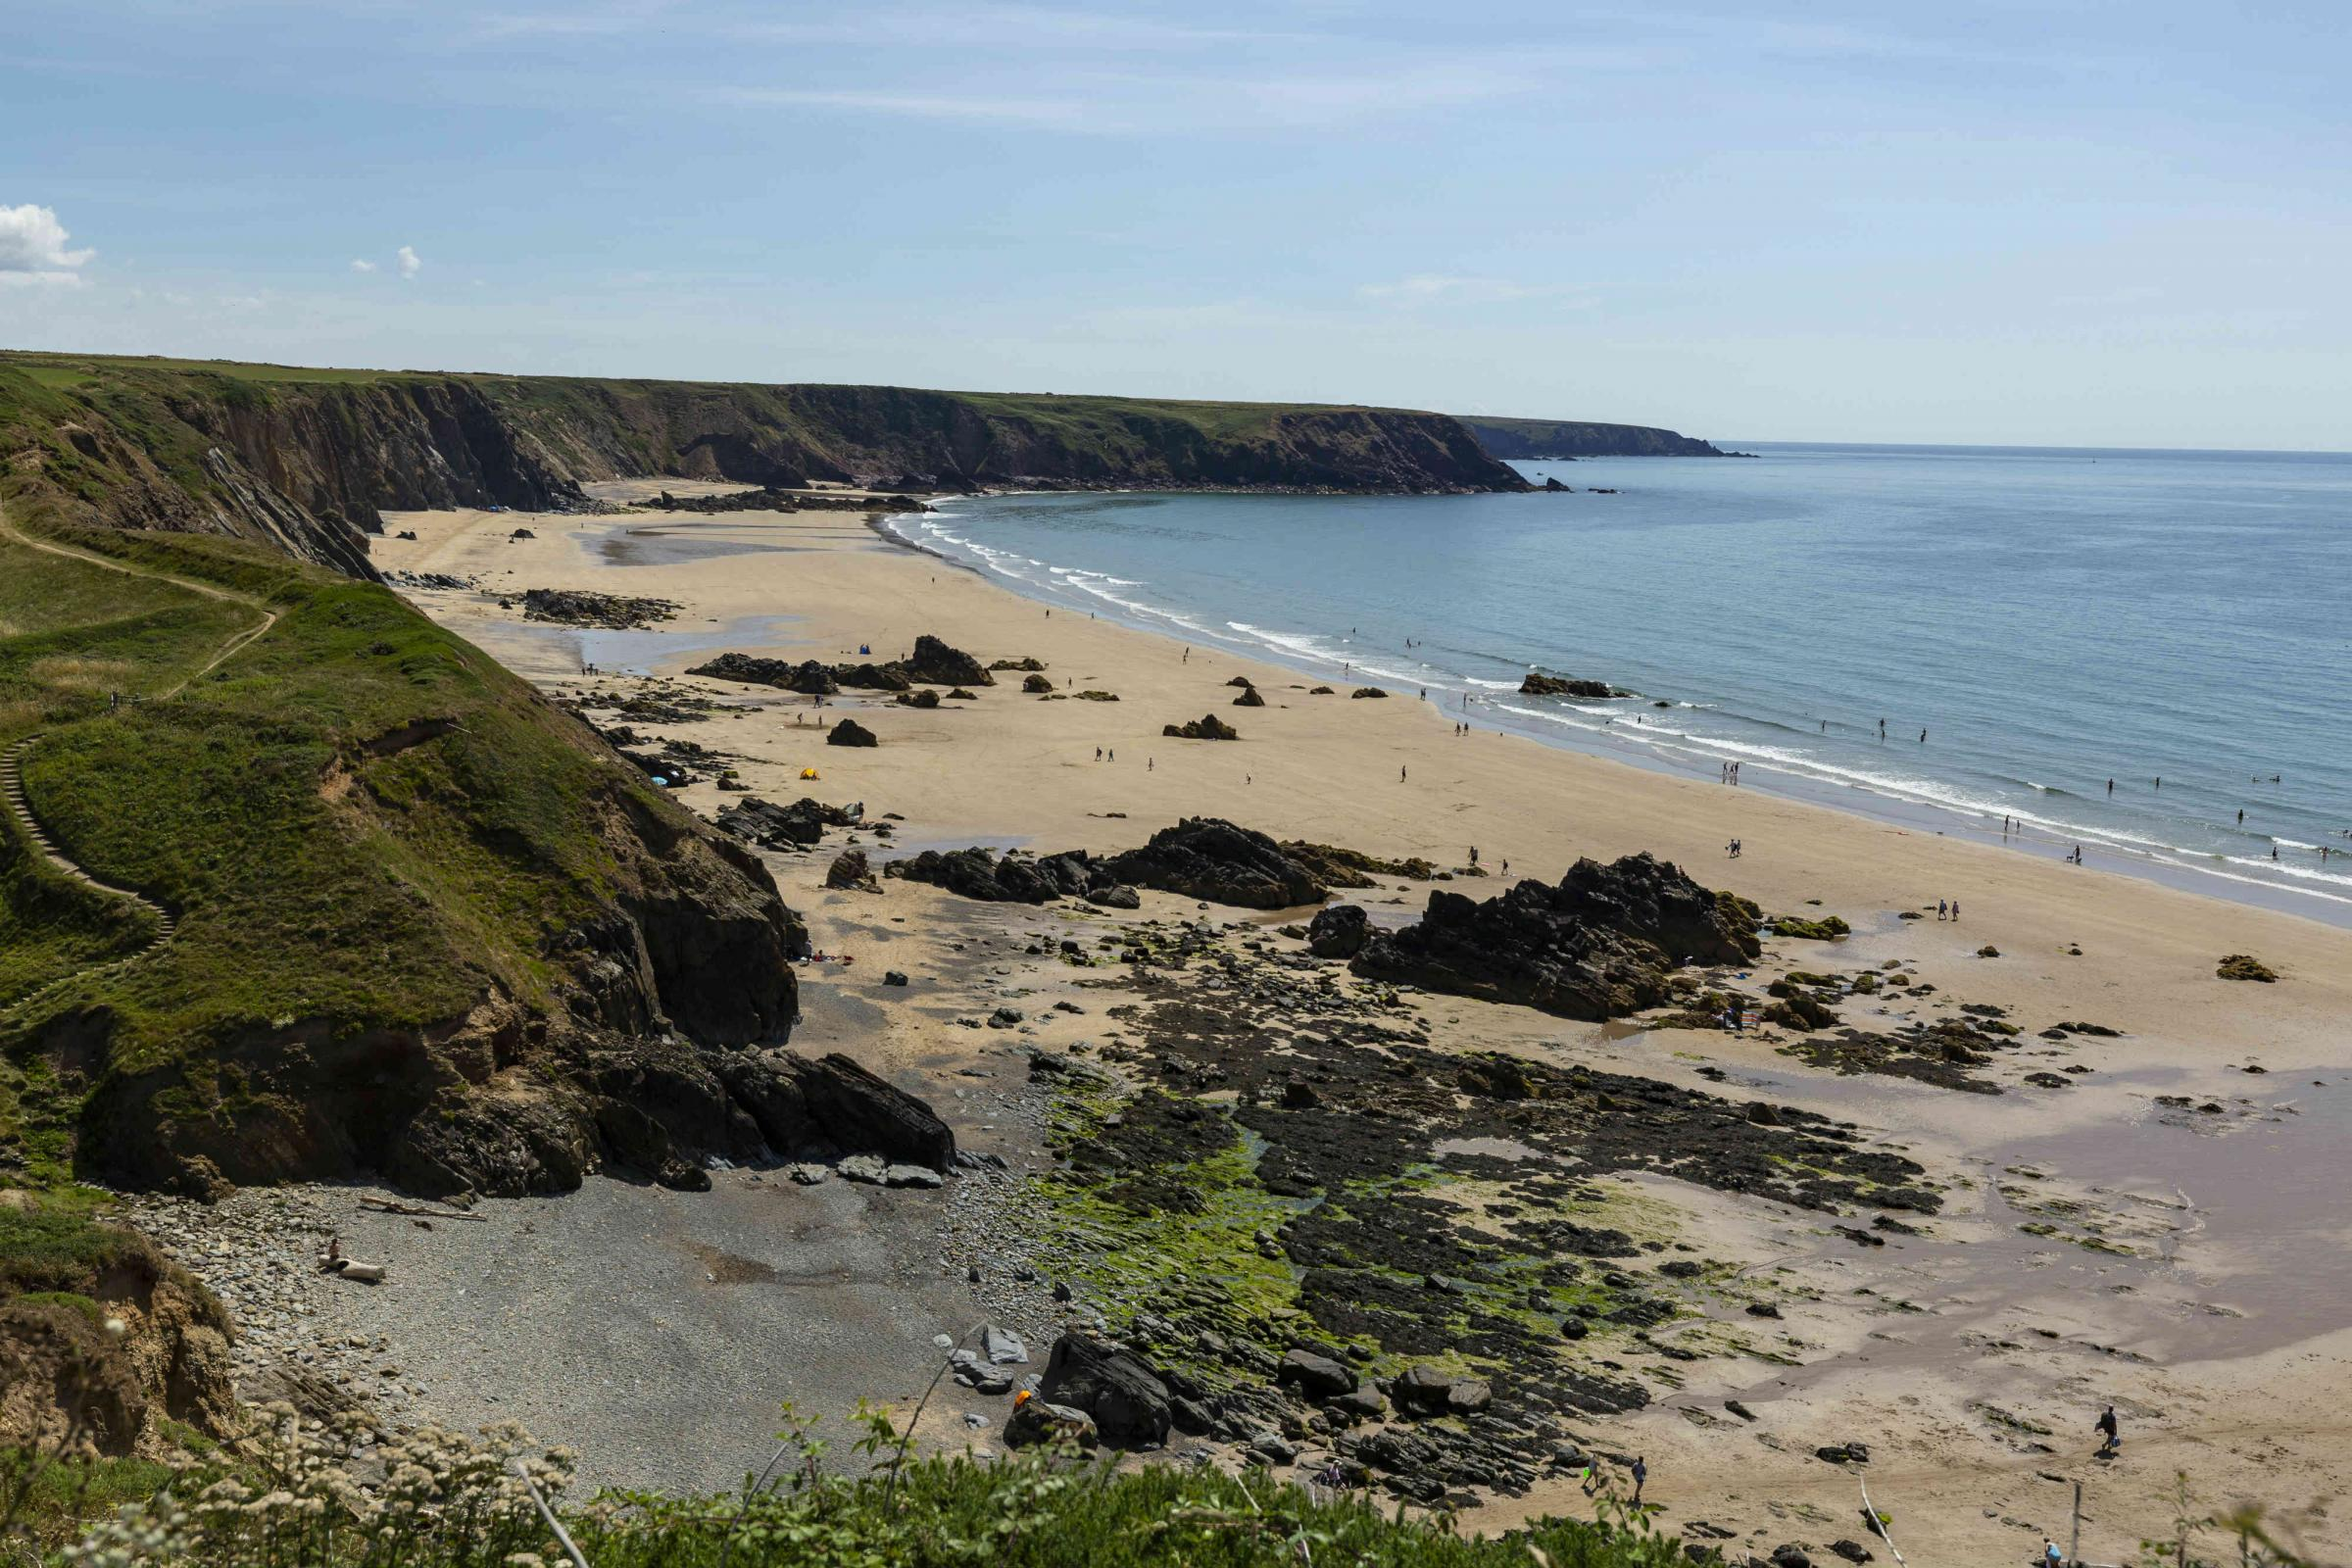 A £120,000 boost to improve tourism facilities at Marloes Sands will be the focus of a new National Trust project over the next two years.PICTURE: Chris Lacey.